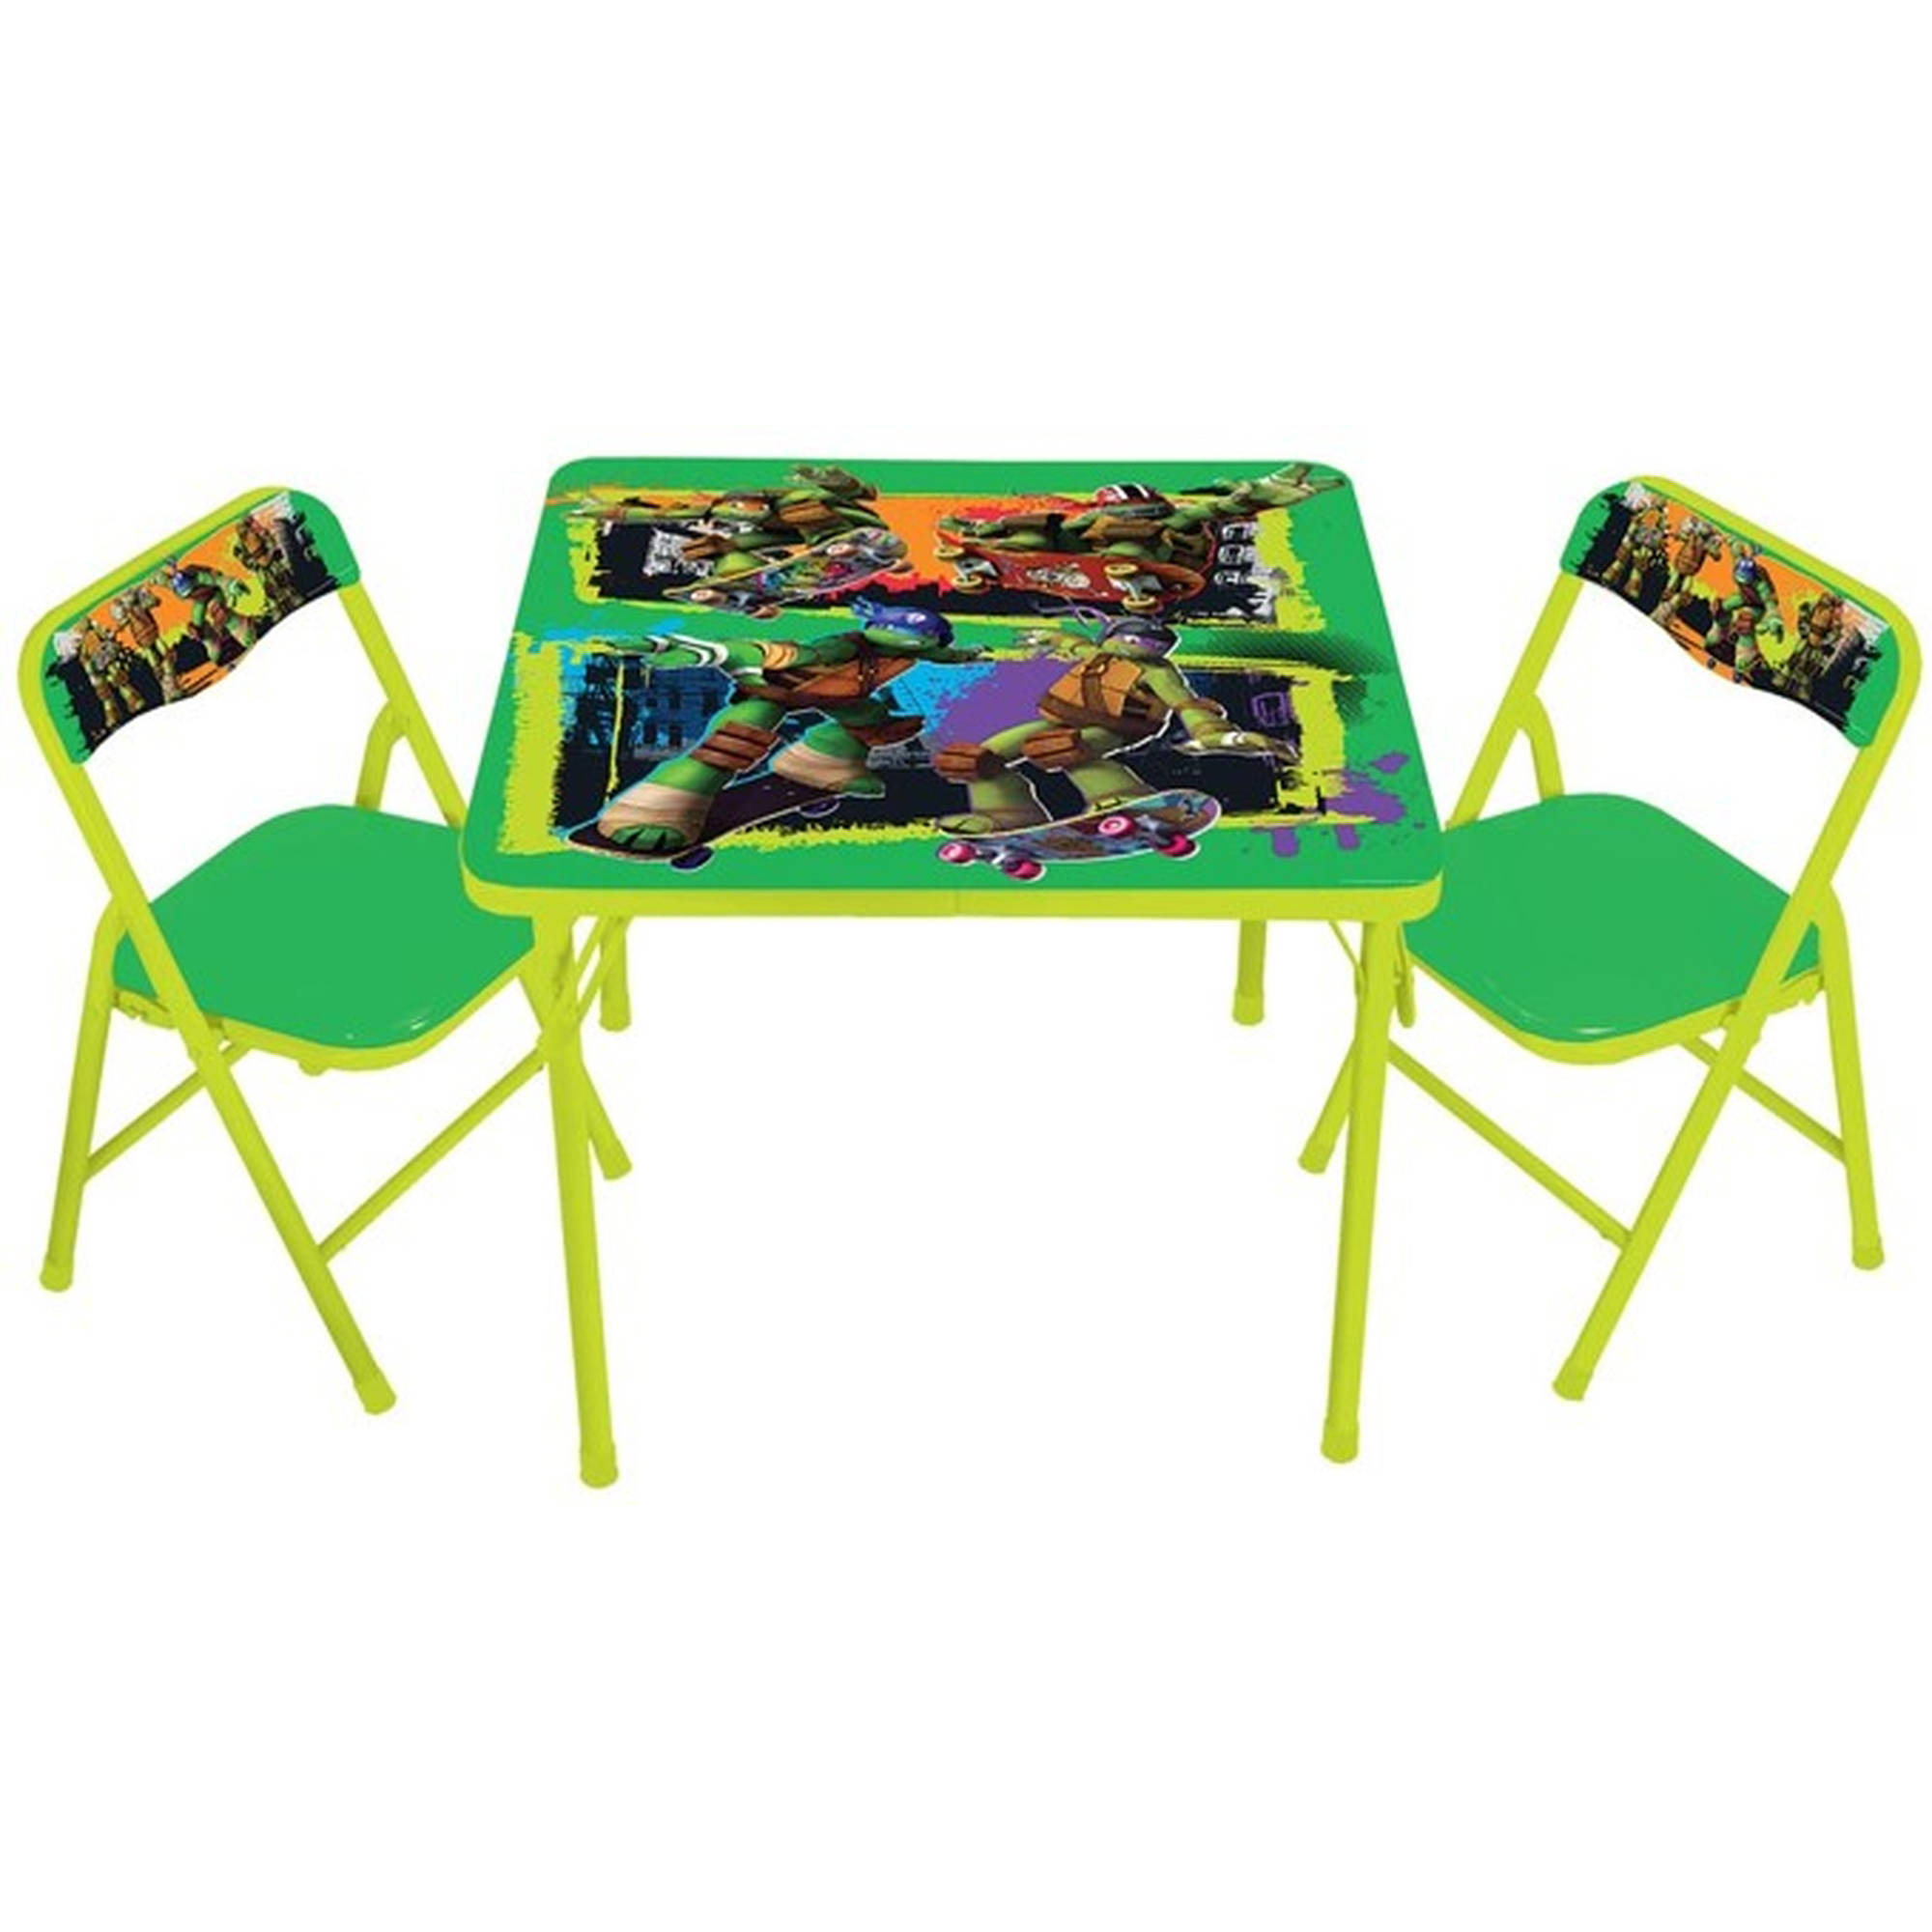 Toddler Activity Table & Chairs Set Your Choice of Character